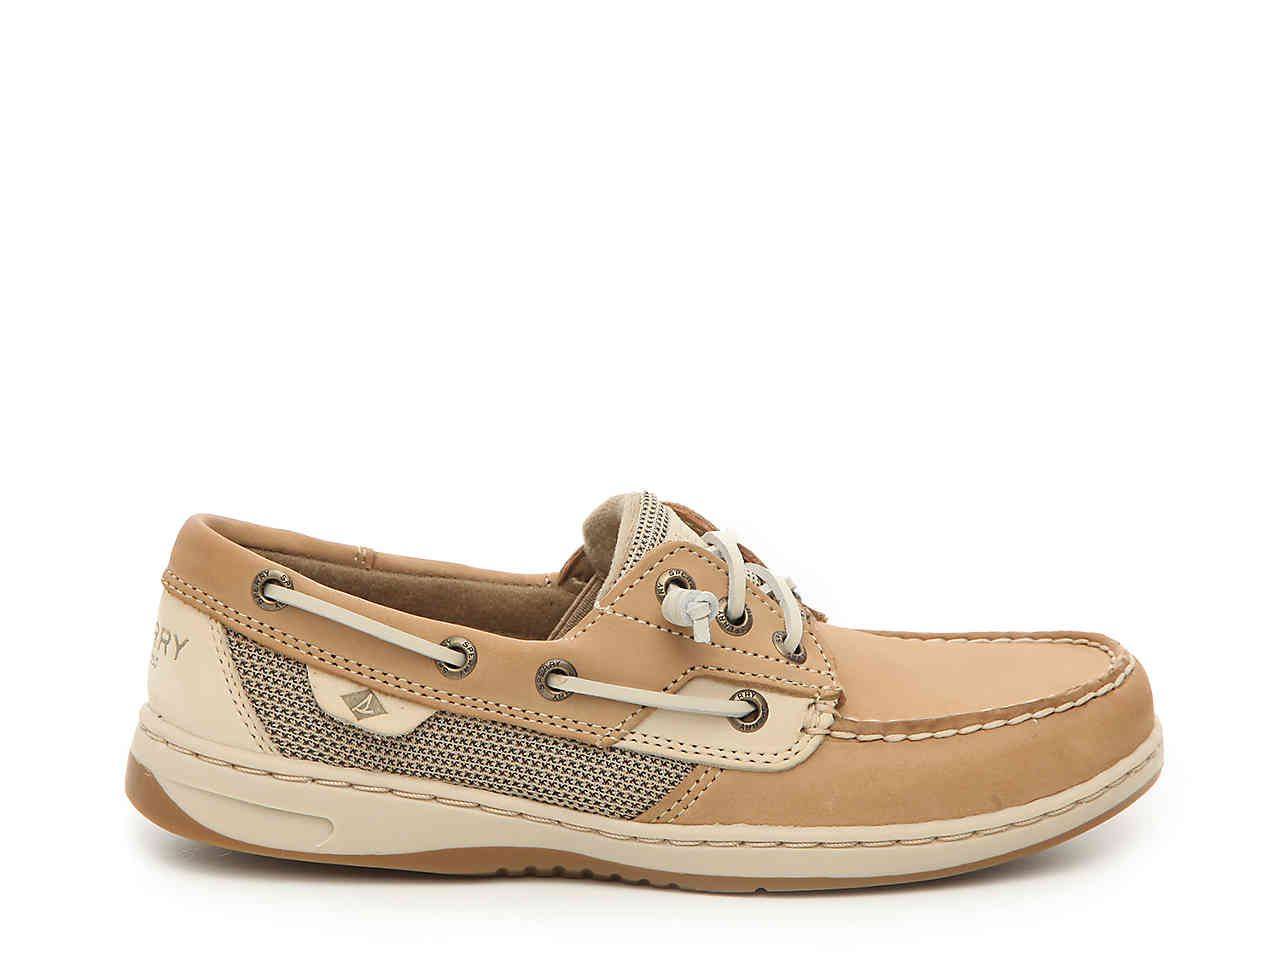 Sperry Rosefish Boat Shoe | Boat shoes